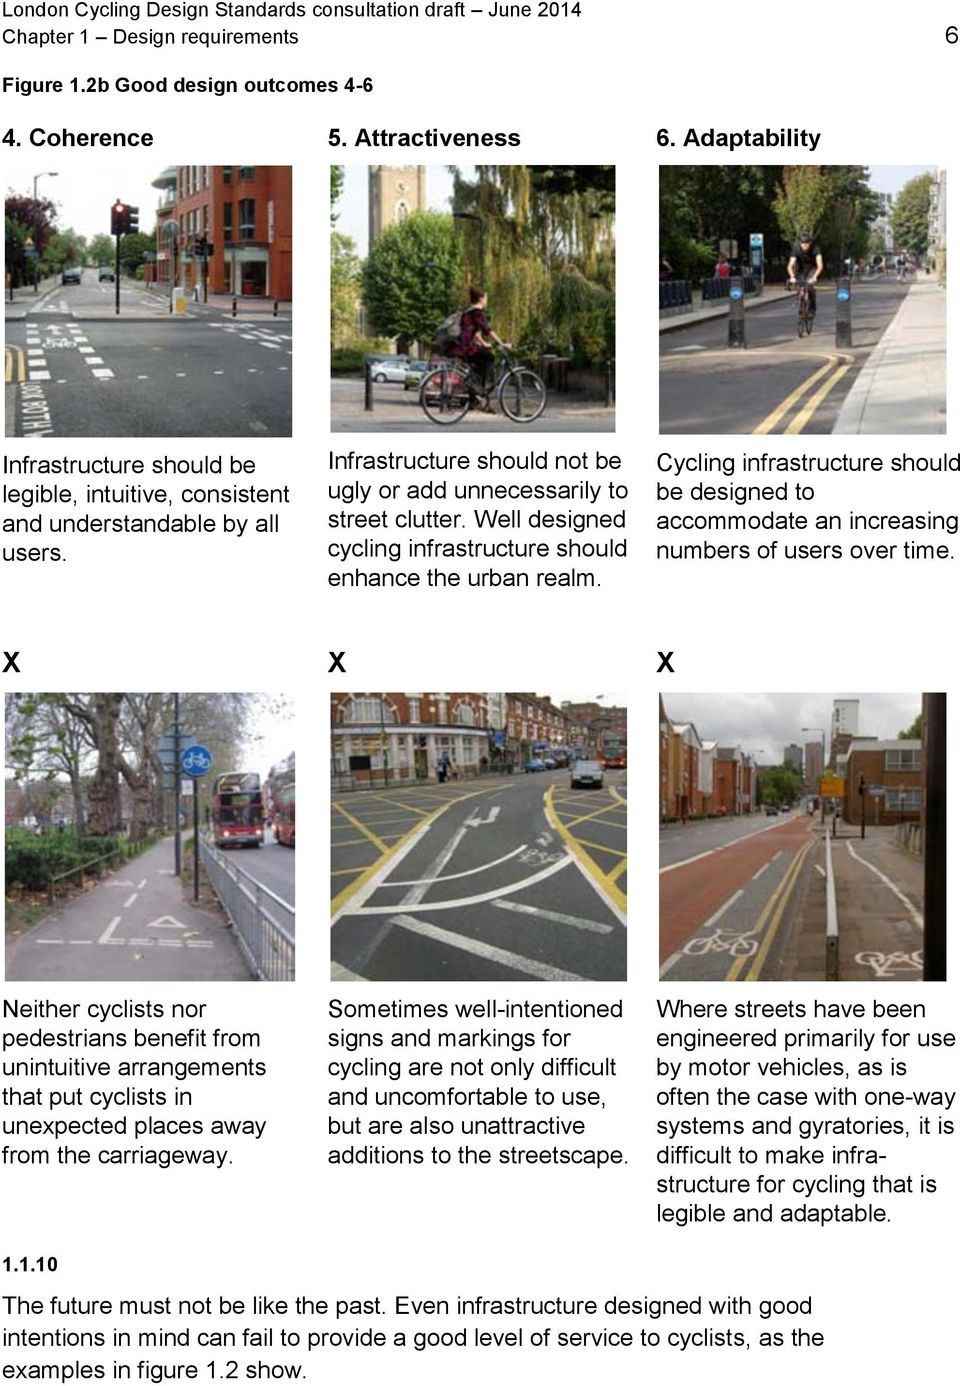 Well designed cycling infrastructure should enhance the urban realm. Cycling infrastructure should be designed to accommodate an increasing numbers of users over time.